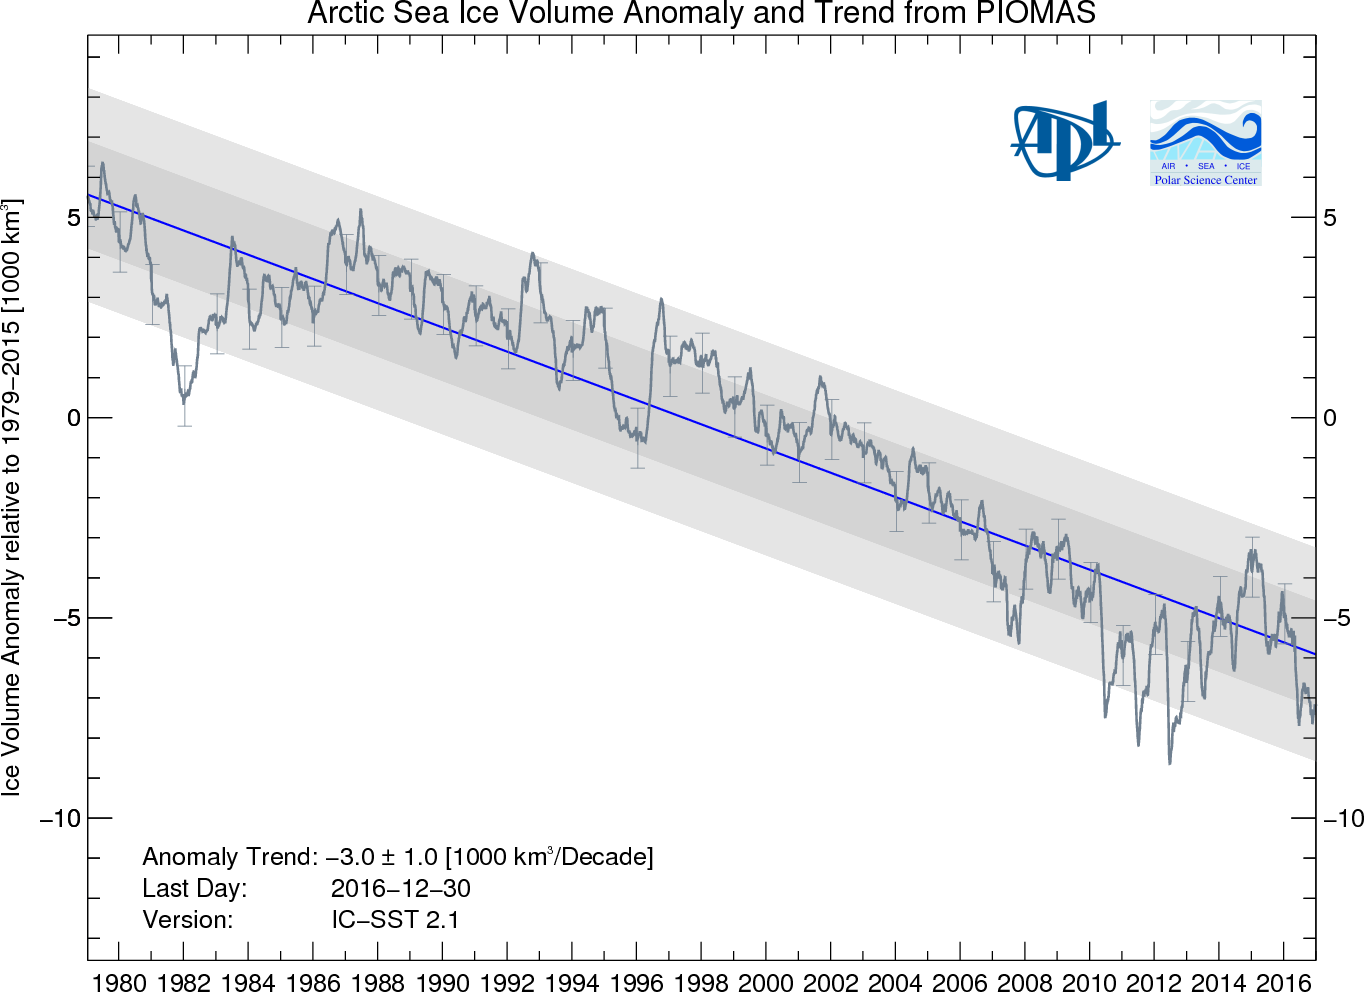 Arctic Sea Ice Volume Anomaly and Trend, negative 3.5 (1000 km2/Decade).